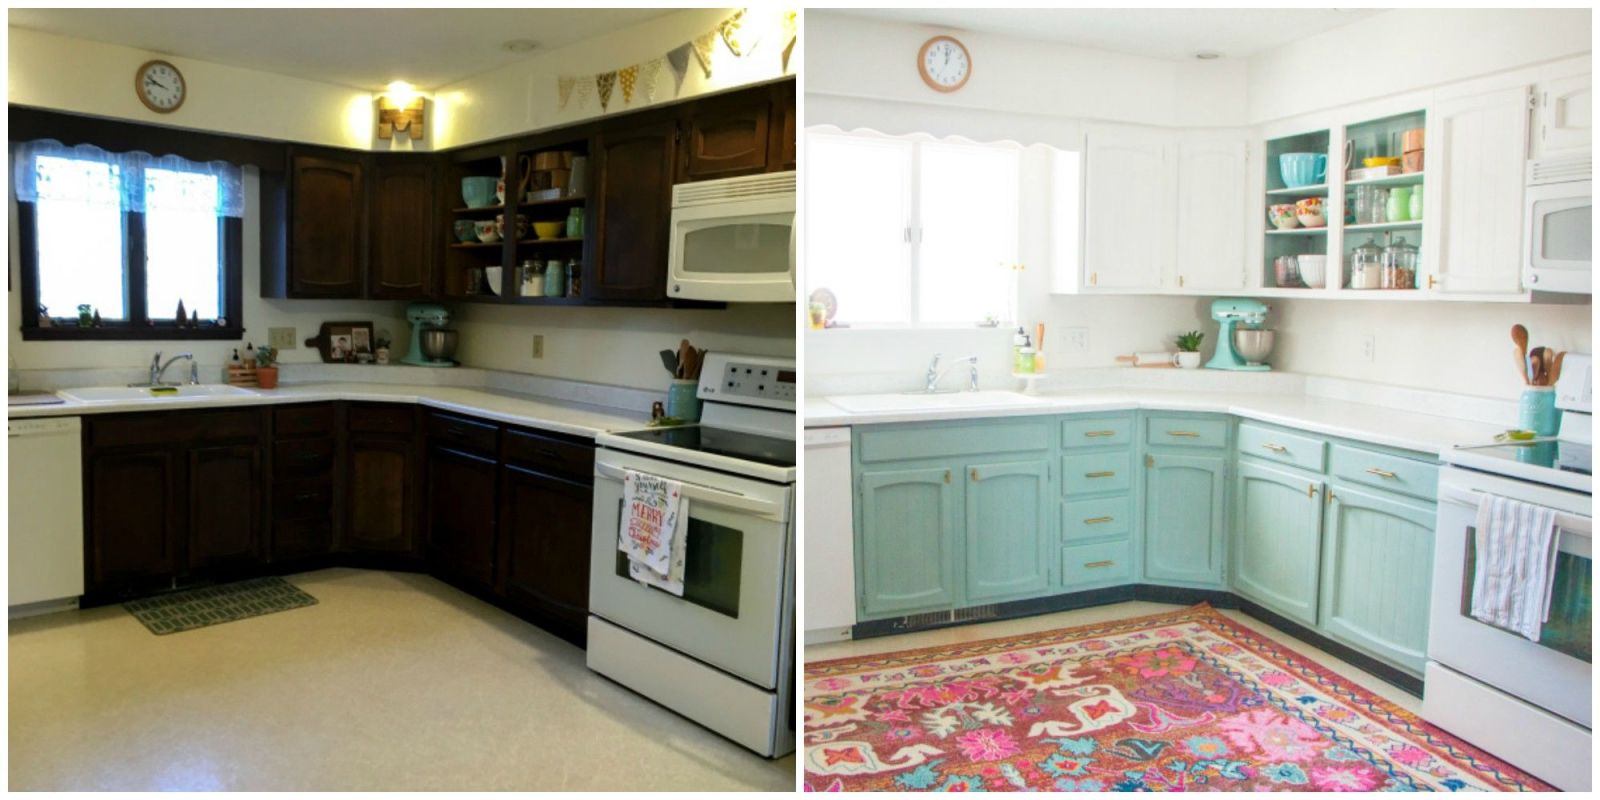 Home Renovation Ideas Before And After Gorgeous Home Makeover Ideas  Before And After Pictures Of House Renovations Decorating Inspiration